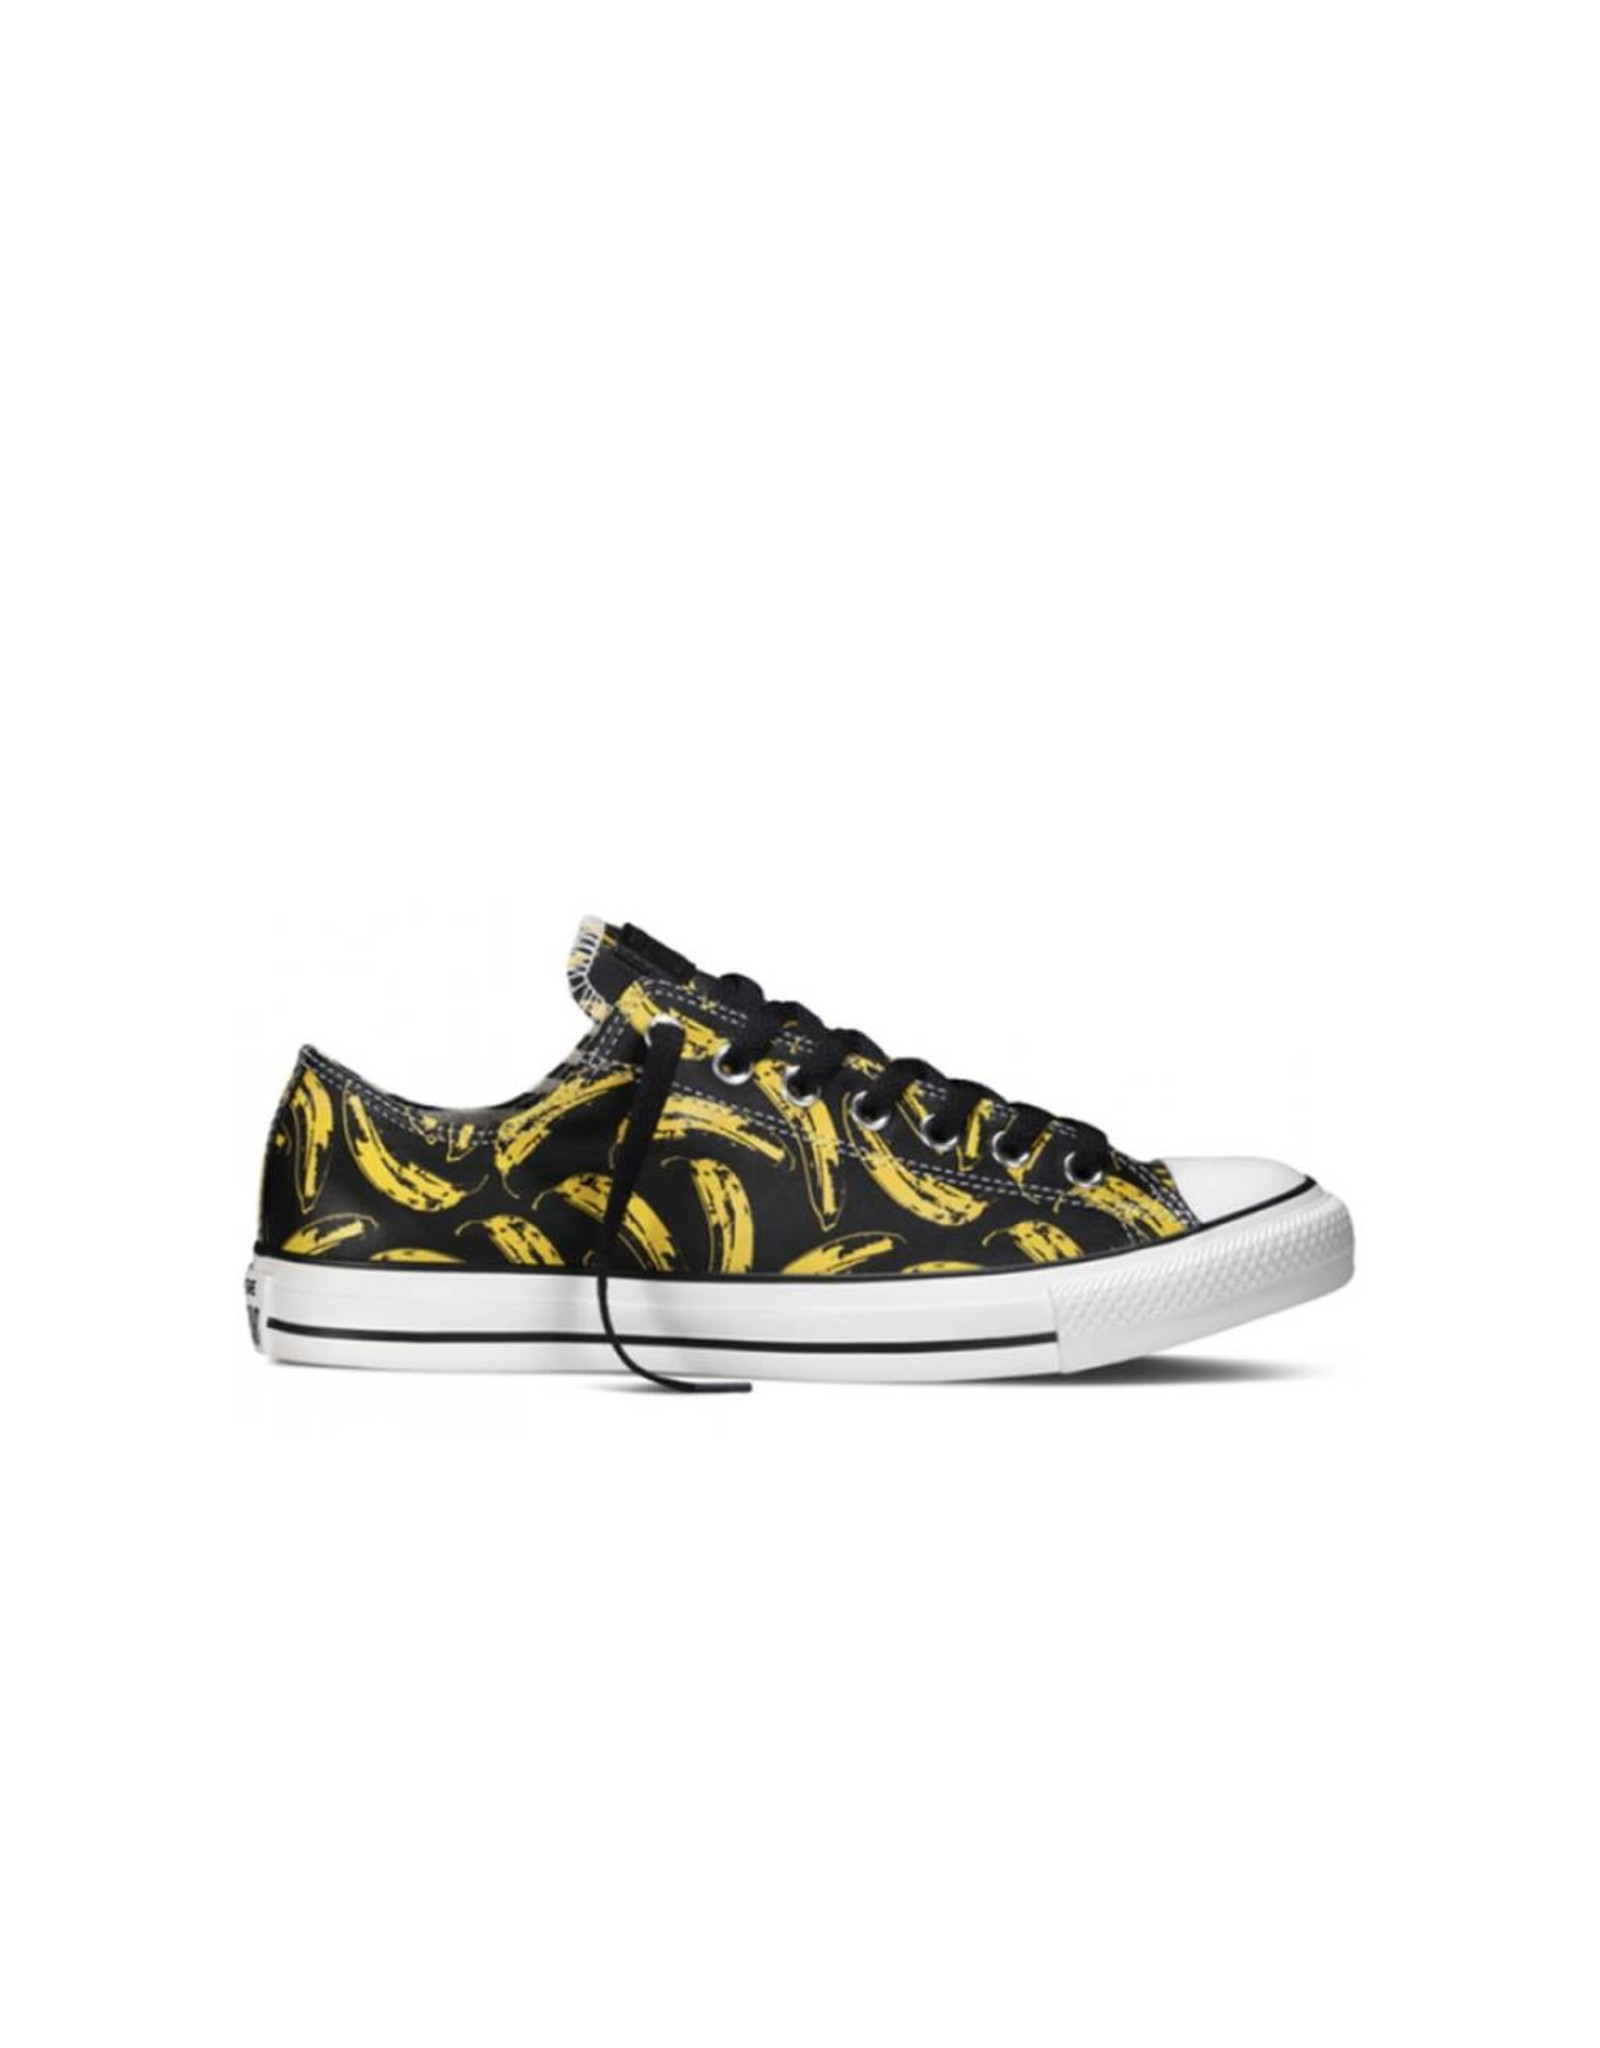 CONVERSE CHUCK TAYLOR WARHOL OX BLACK WHITE LEATHER ANDY WARHOL C9VU-149536C